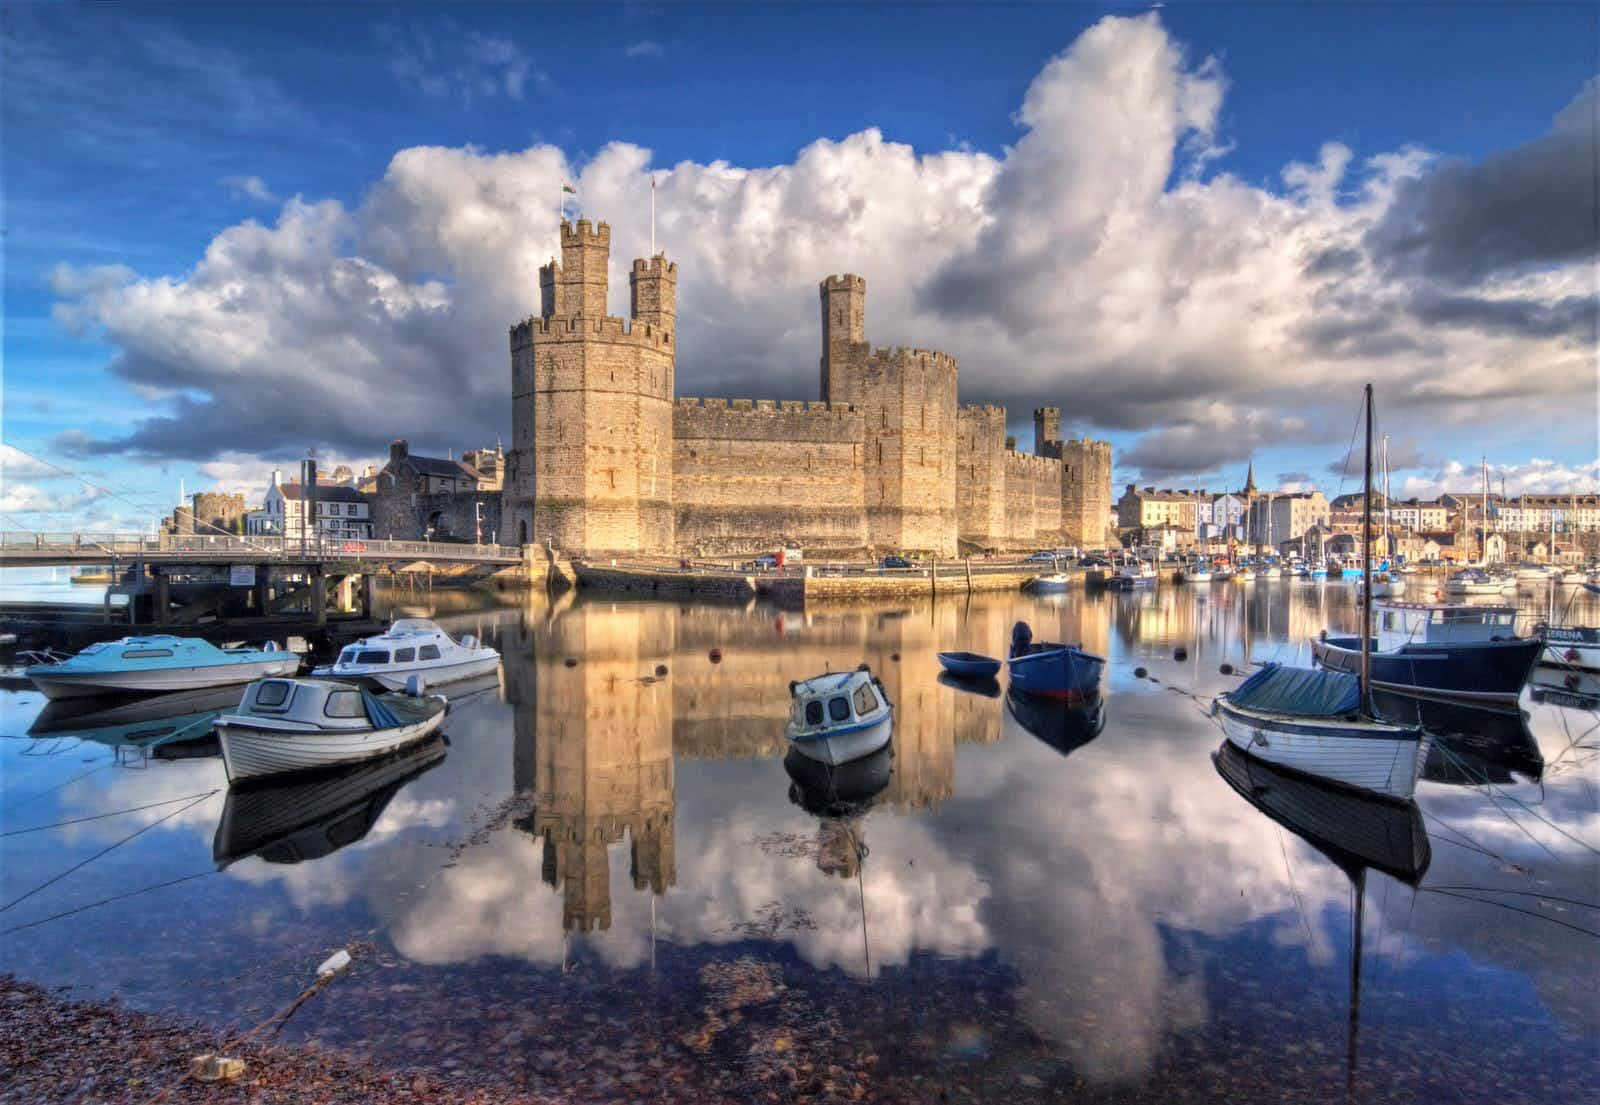 First time Wales: dragons, castles and breath-taking scenery